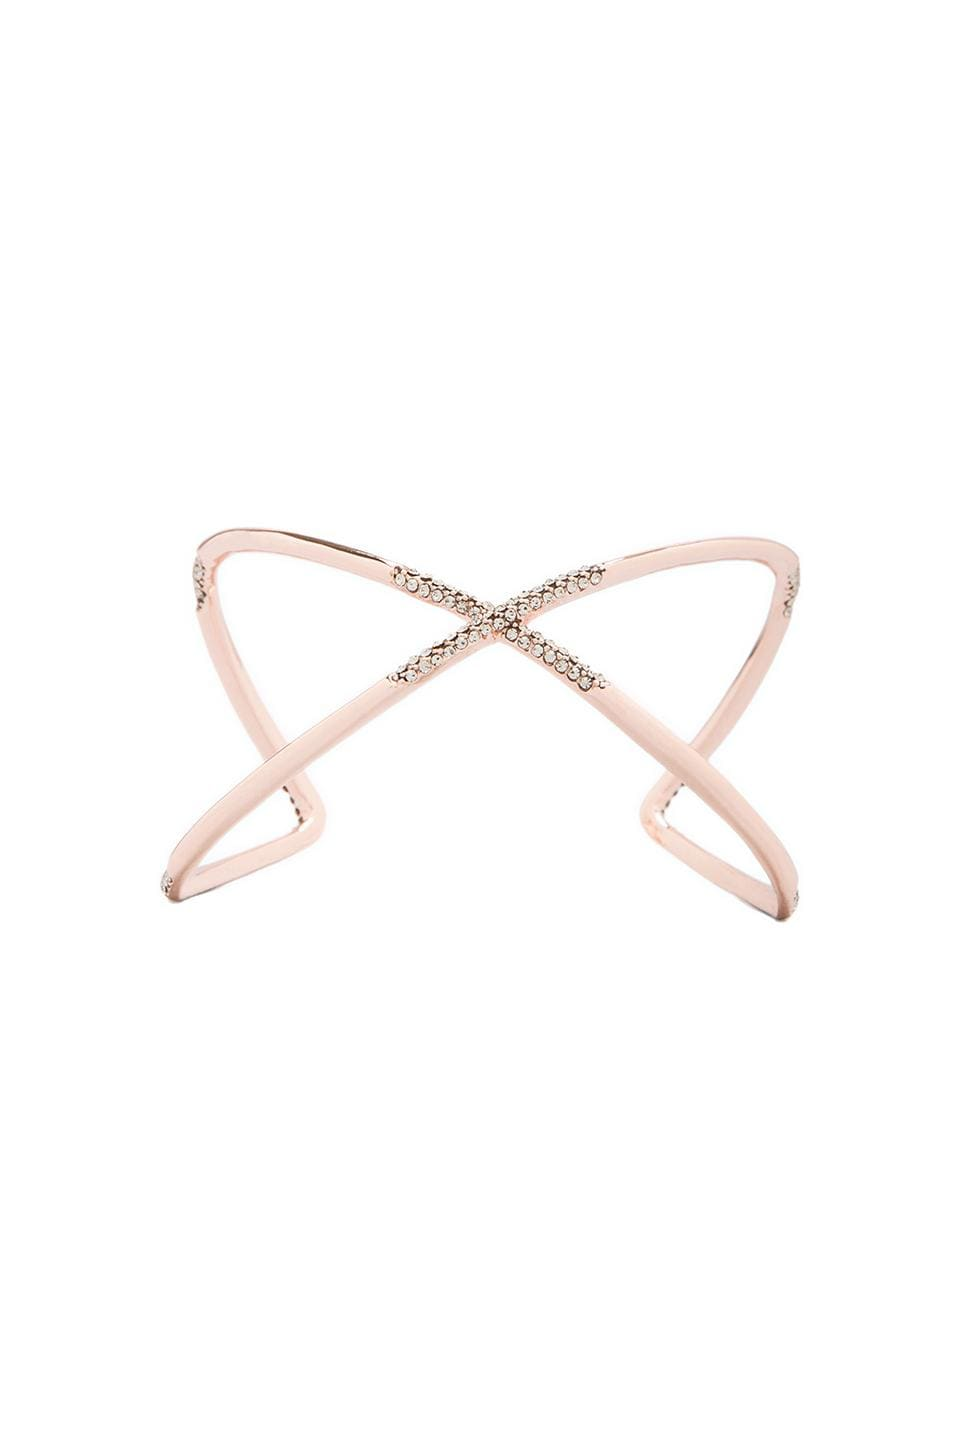 House of Harlow 1960 House of Harlow Sound Waves Cuff in Rose Gold